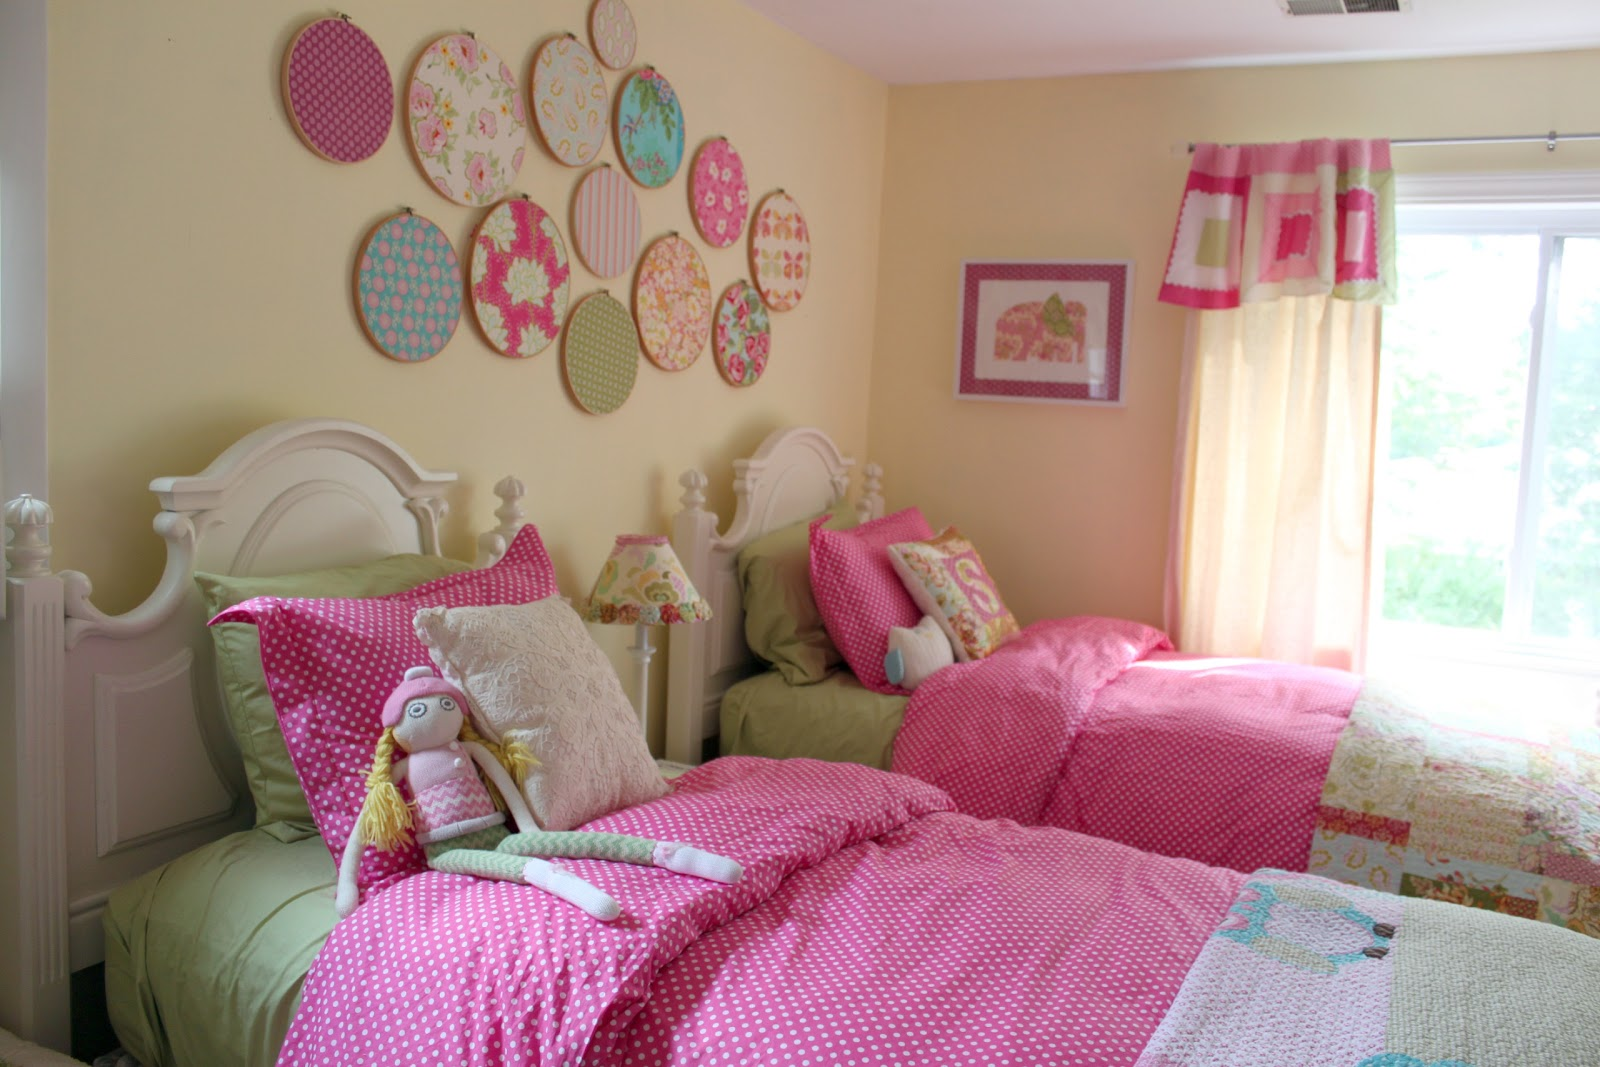 Office interior design image decorating girls shared toddler bedroom - Baby girl bedroom ideas ...